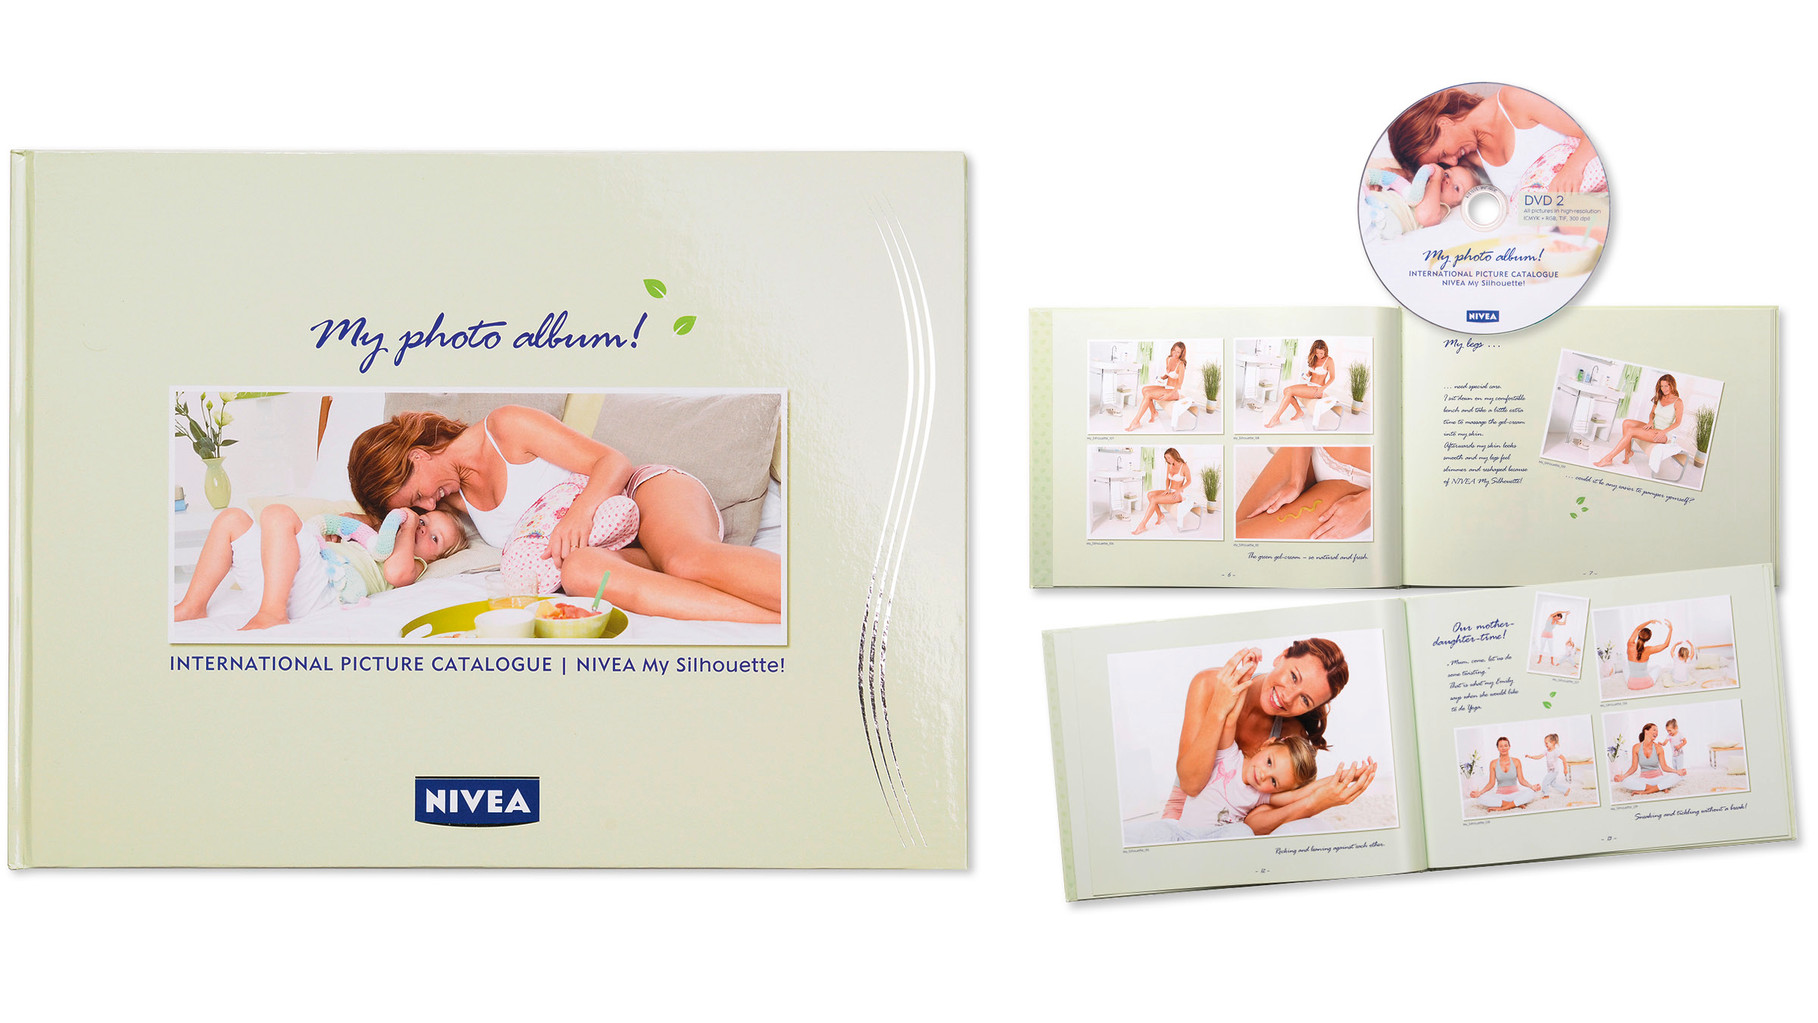 NIVEA · International Picture Catalogue · Konzeption, Art Direction am Set, Gestaltung, Text · Fotograf: Markus Hauser · WINTERPOL